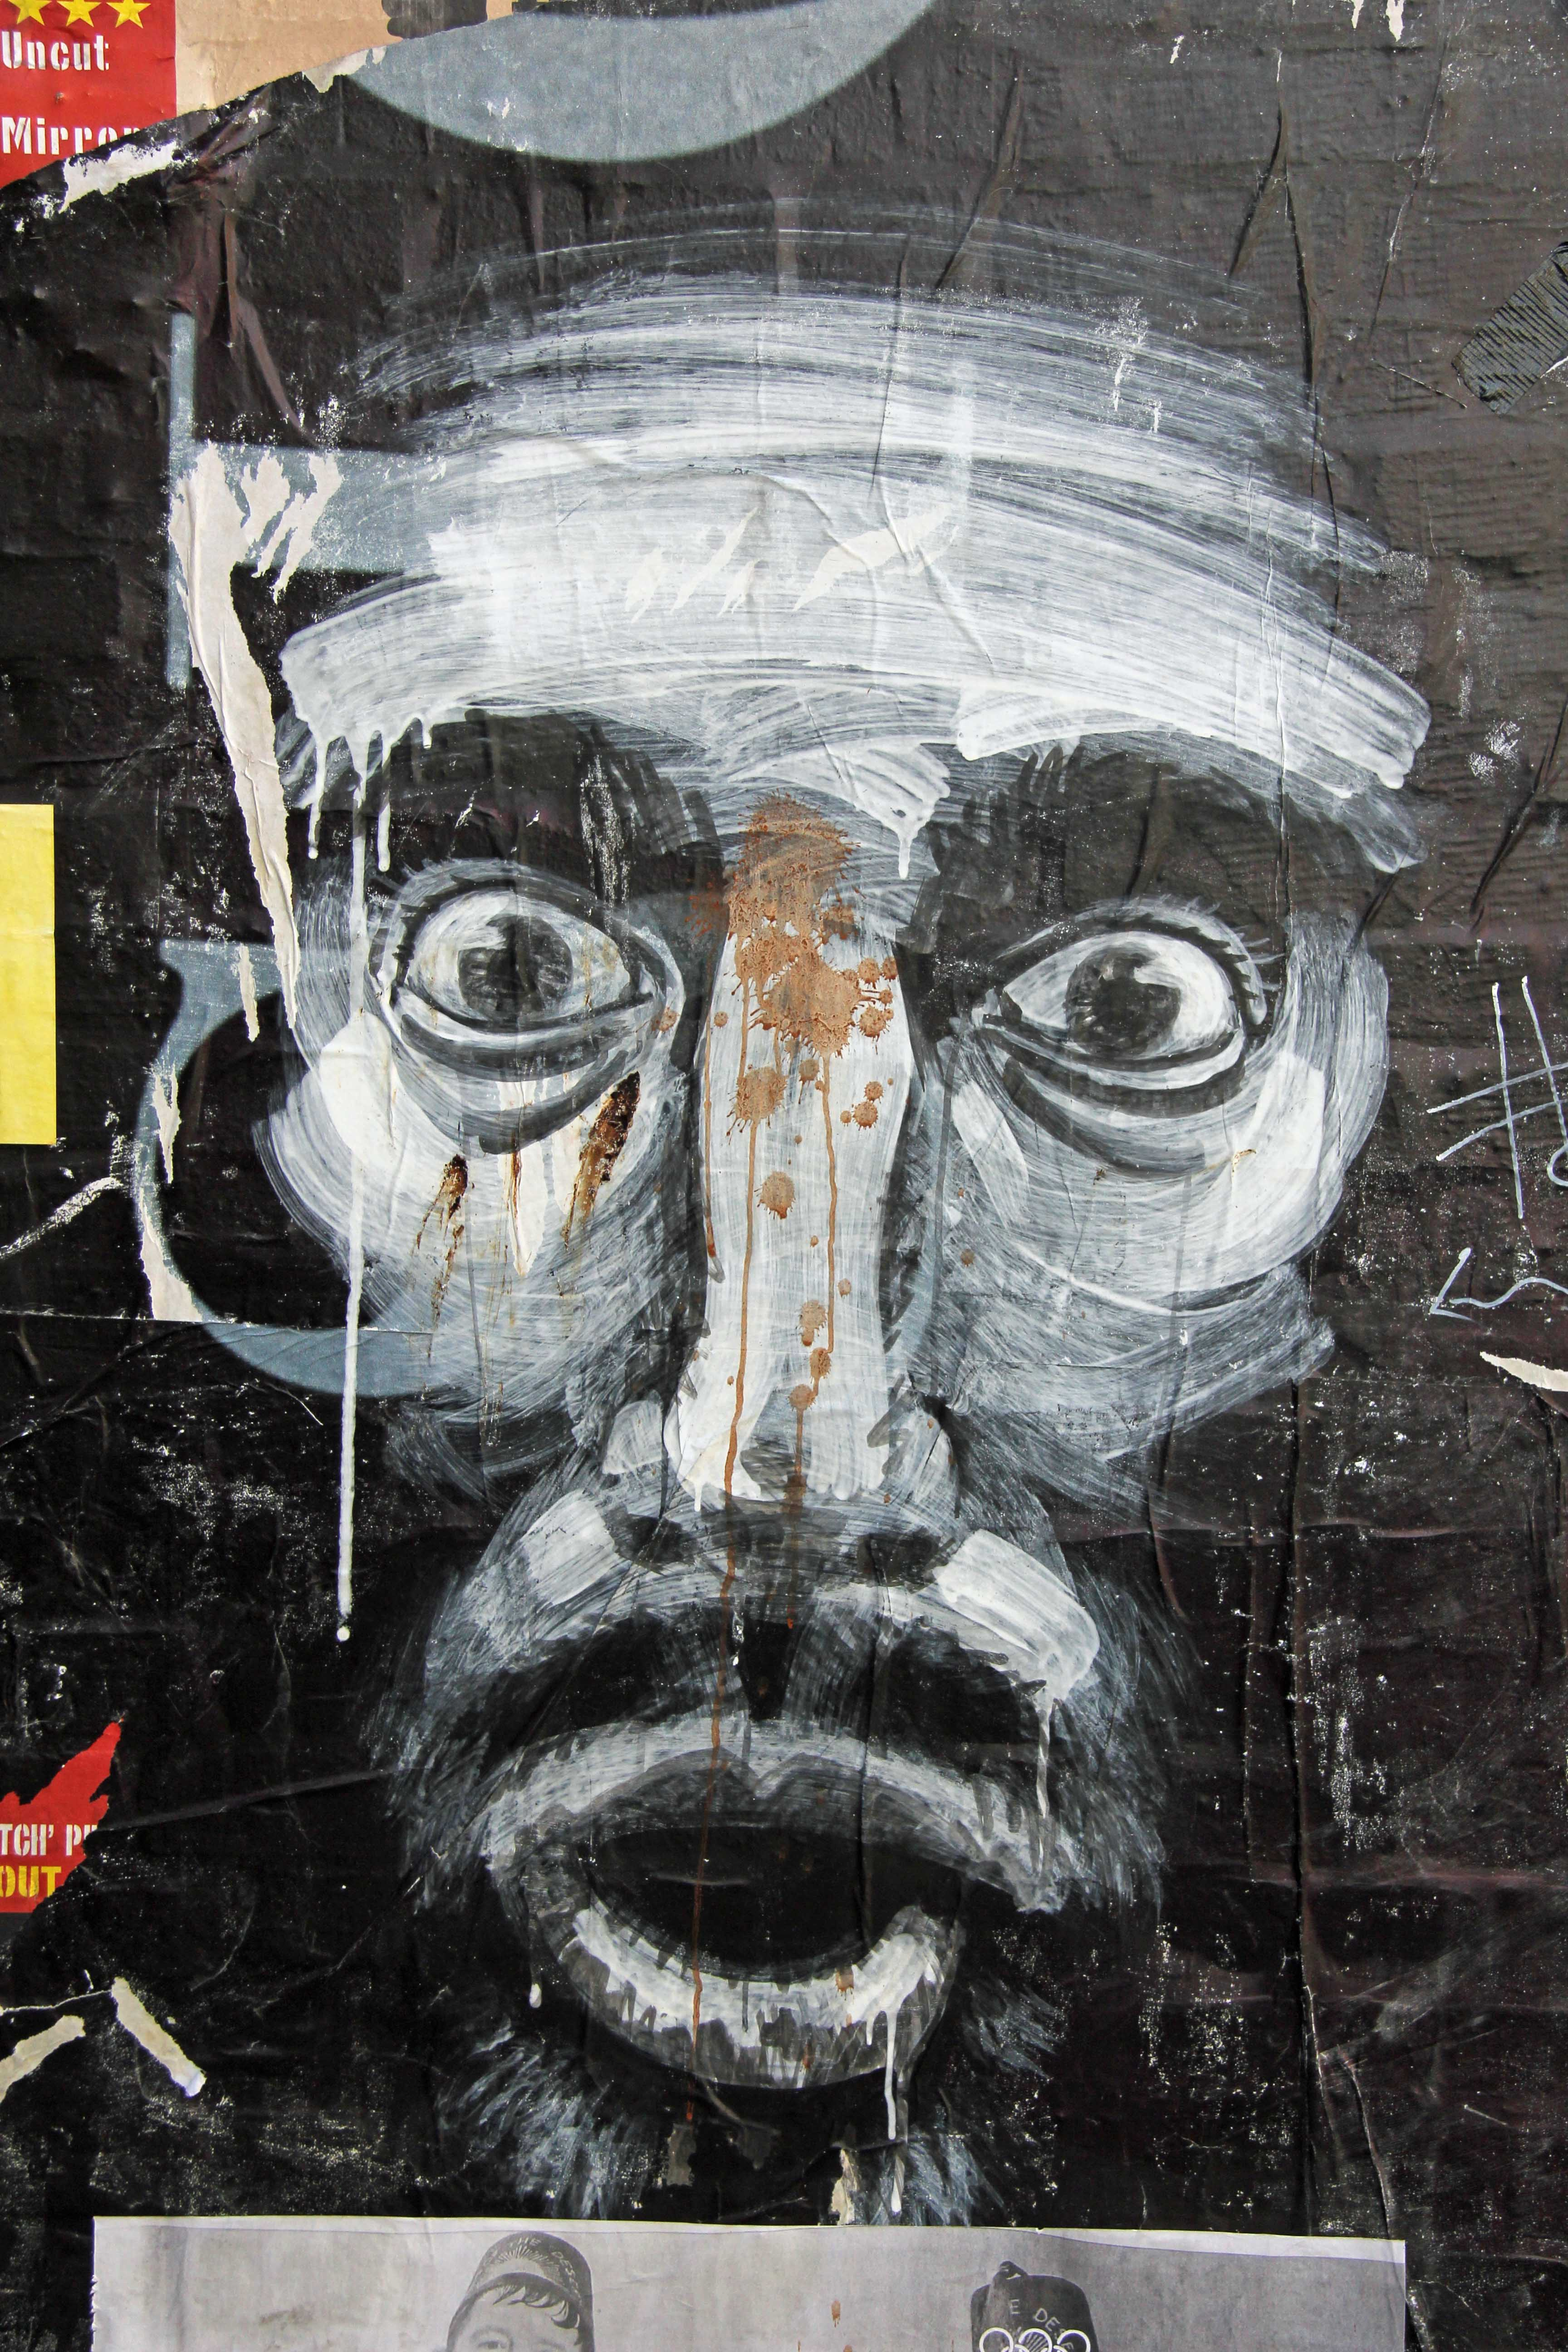 Staring Man - Street Art by Unknown Artist in East London